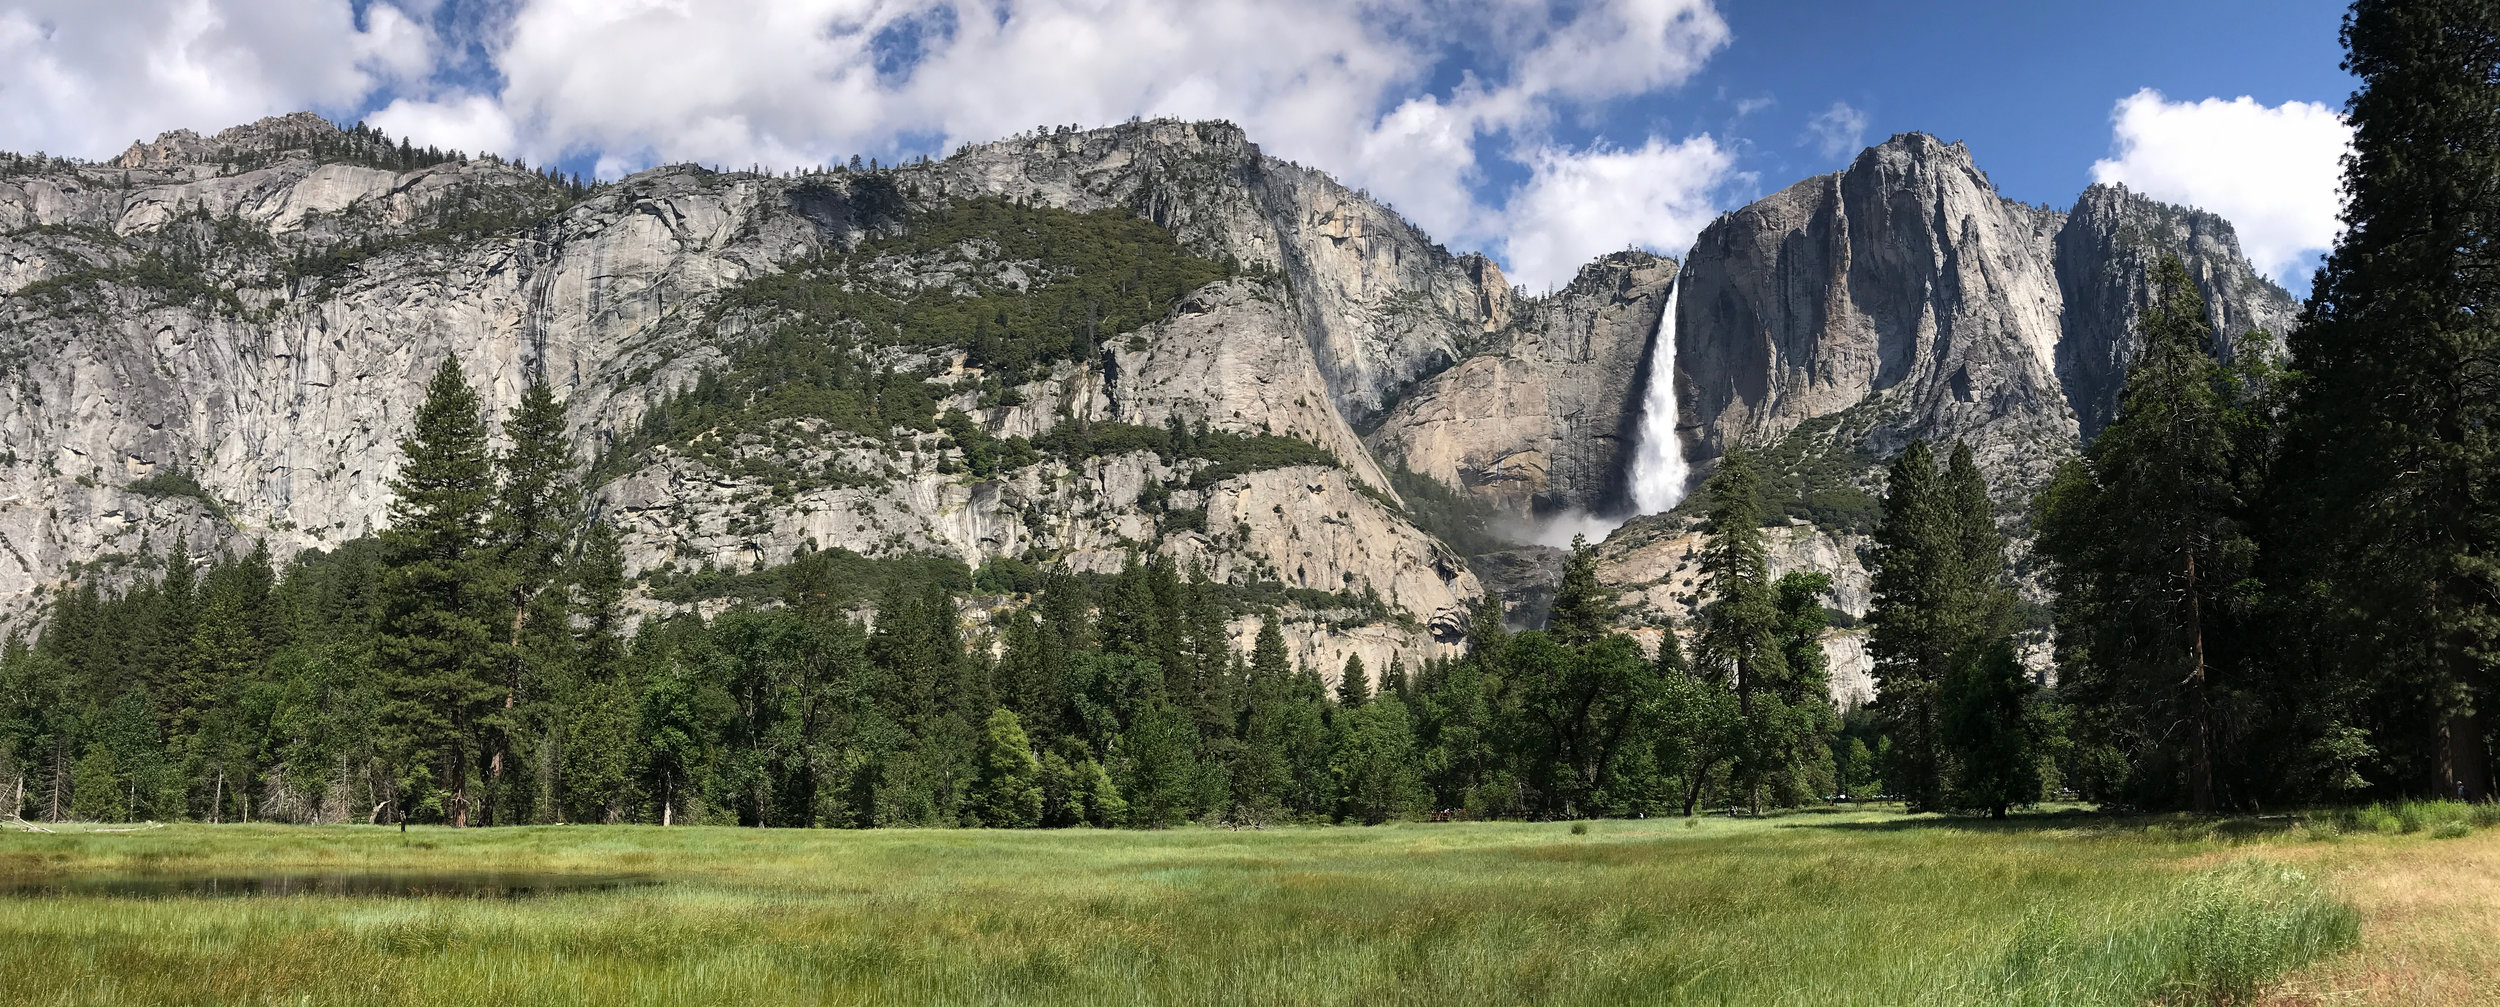 """"""" It is easier to feel than to realize, or in any way explain, Yosemite grandeur. The magnitude of the rocks and trees and streams are so delicately harmonized, they are mostly hidden. """" —John Muir"""